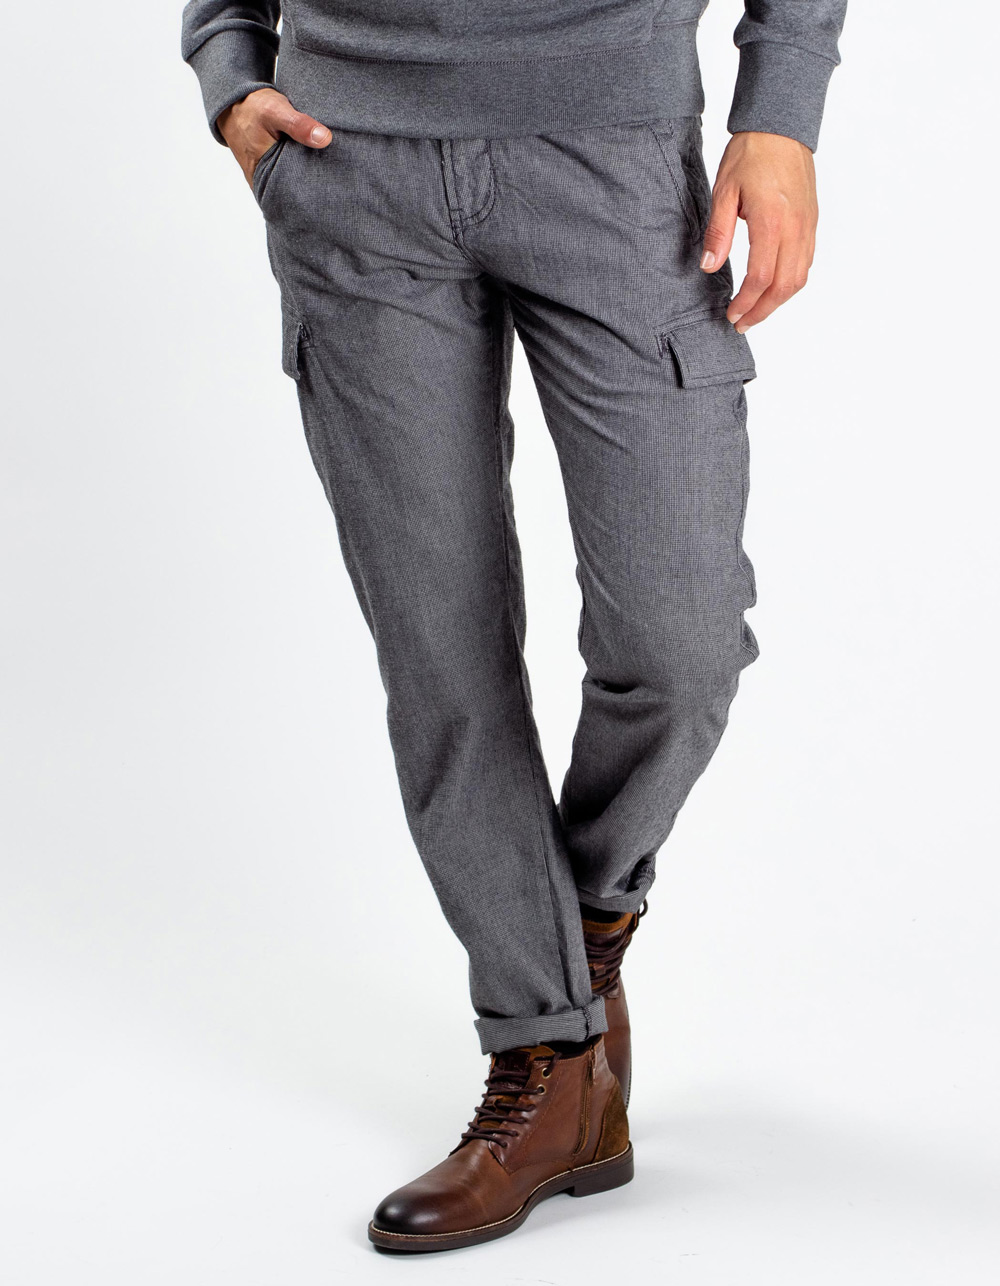 Grey cargo trousers with ropes